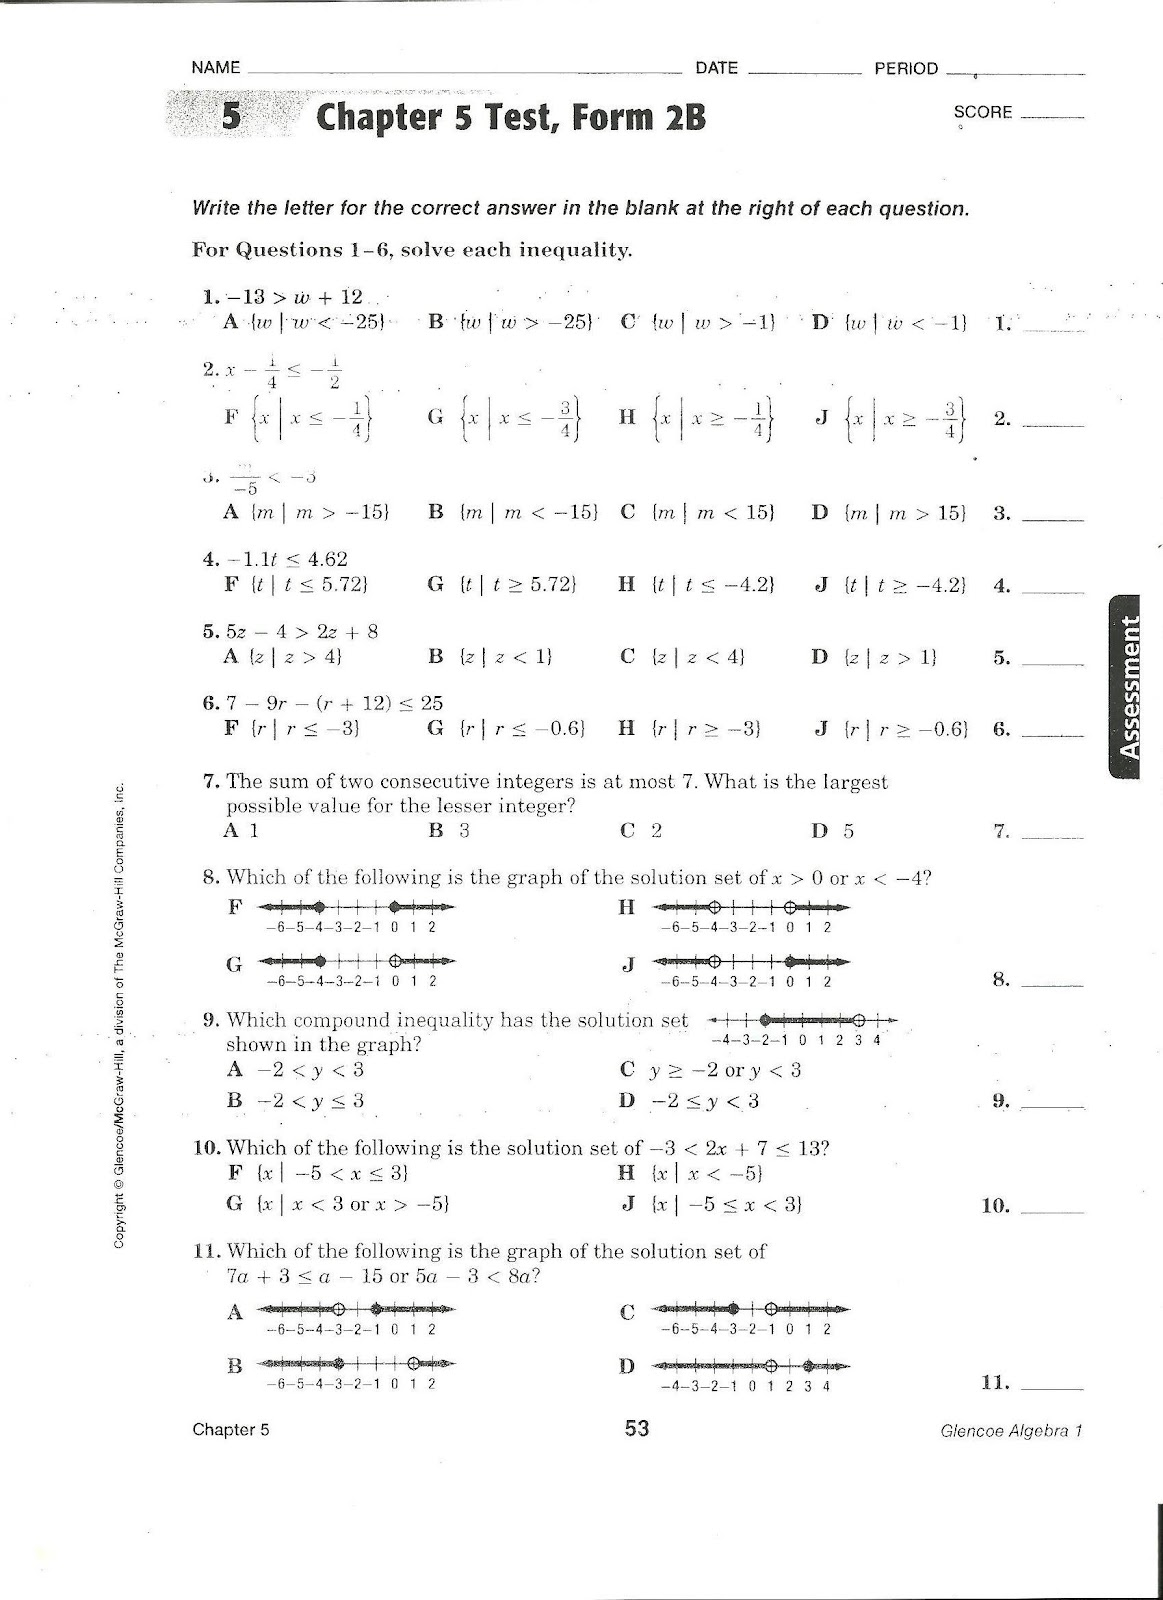 Coach Gobers Algebra Class – Glencoe Algebra 1 Worksheets Answer Key